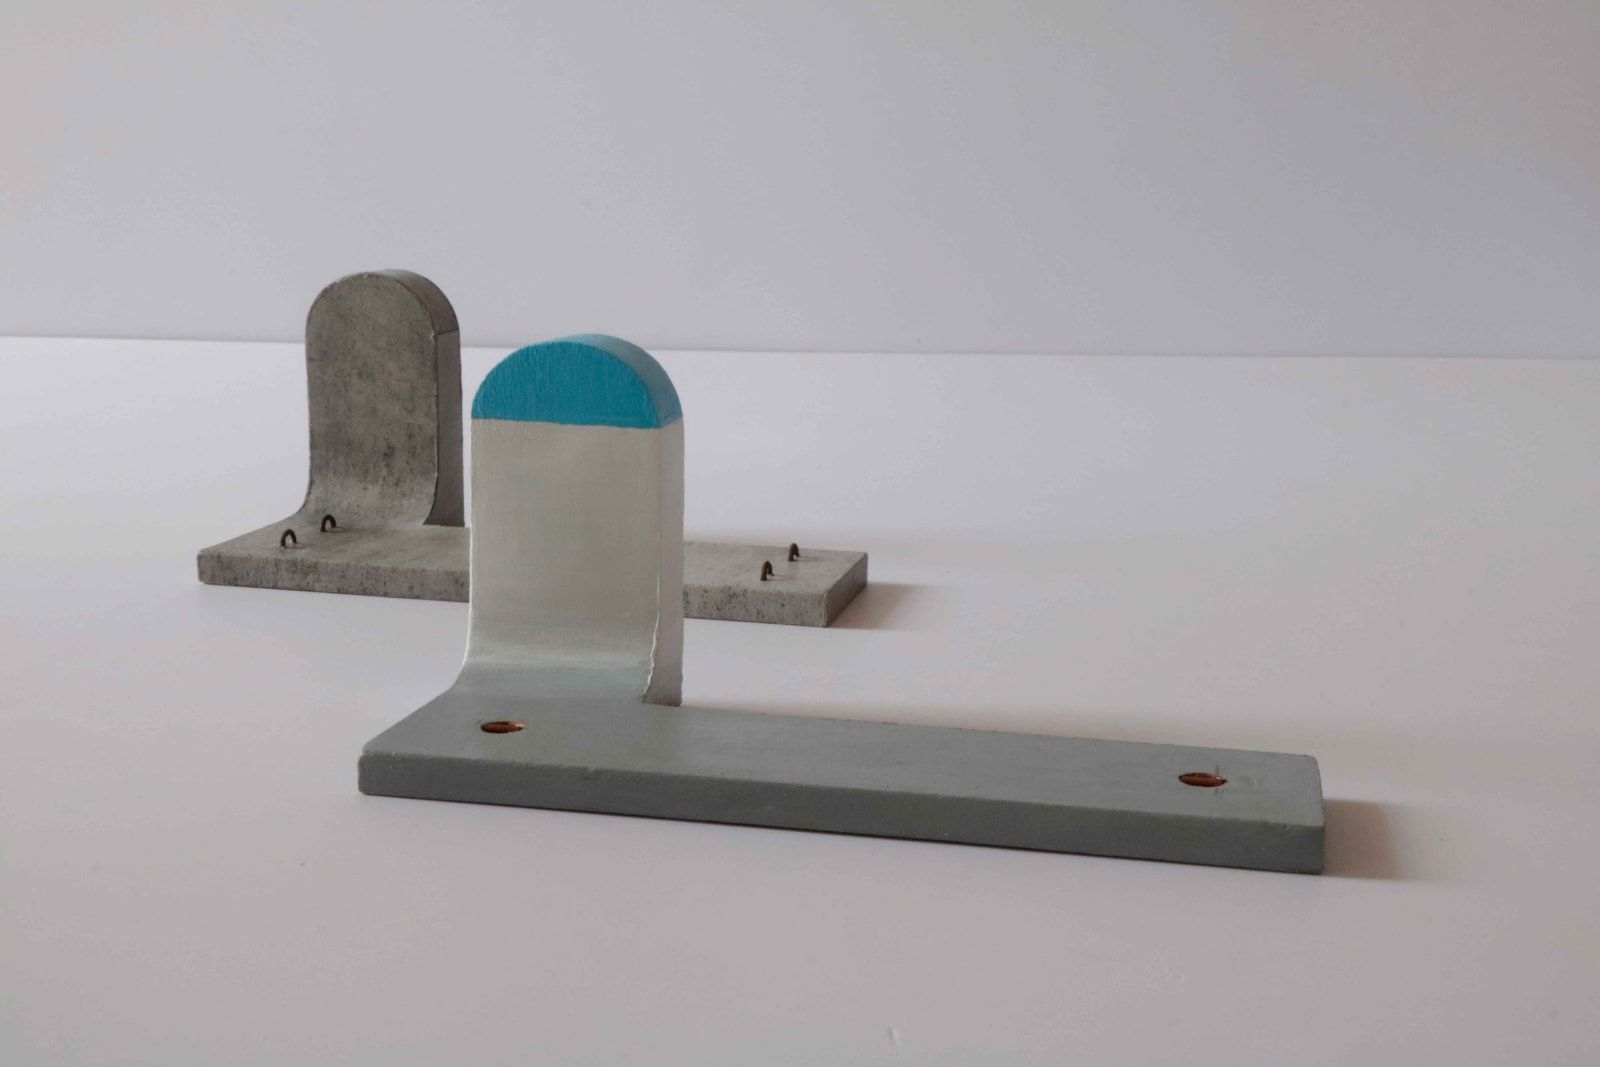 MRUGEN RATHOD Maquettes for Journey to J-point , 2020 | Frottage and acrylic paint on wood | 3.5 x 3.5 x 7 in. each